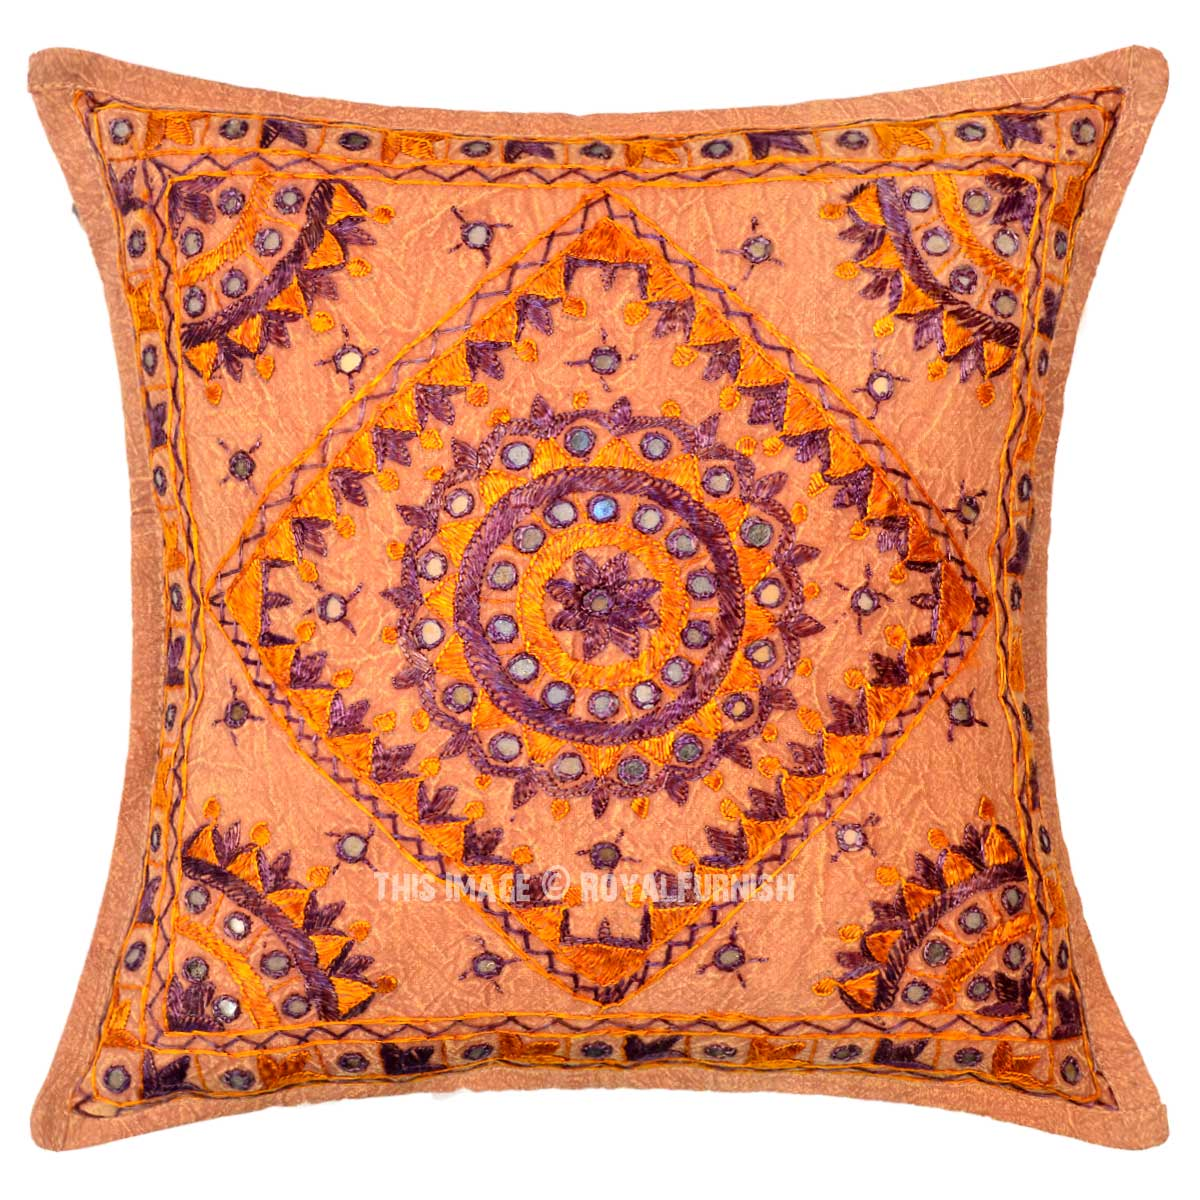 Small Throw Pillow Cases : Brown Multi Small Mirrored Embroidered Cotton Throw Pillow Cover 16X16 Inch - RoyalFurnish.com